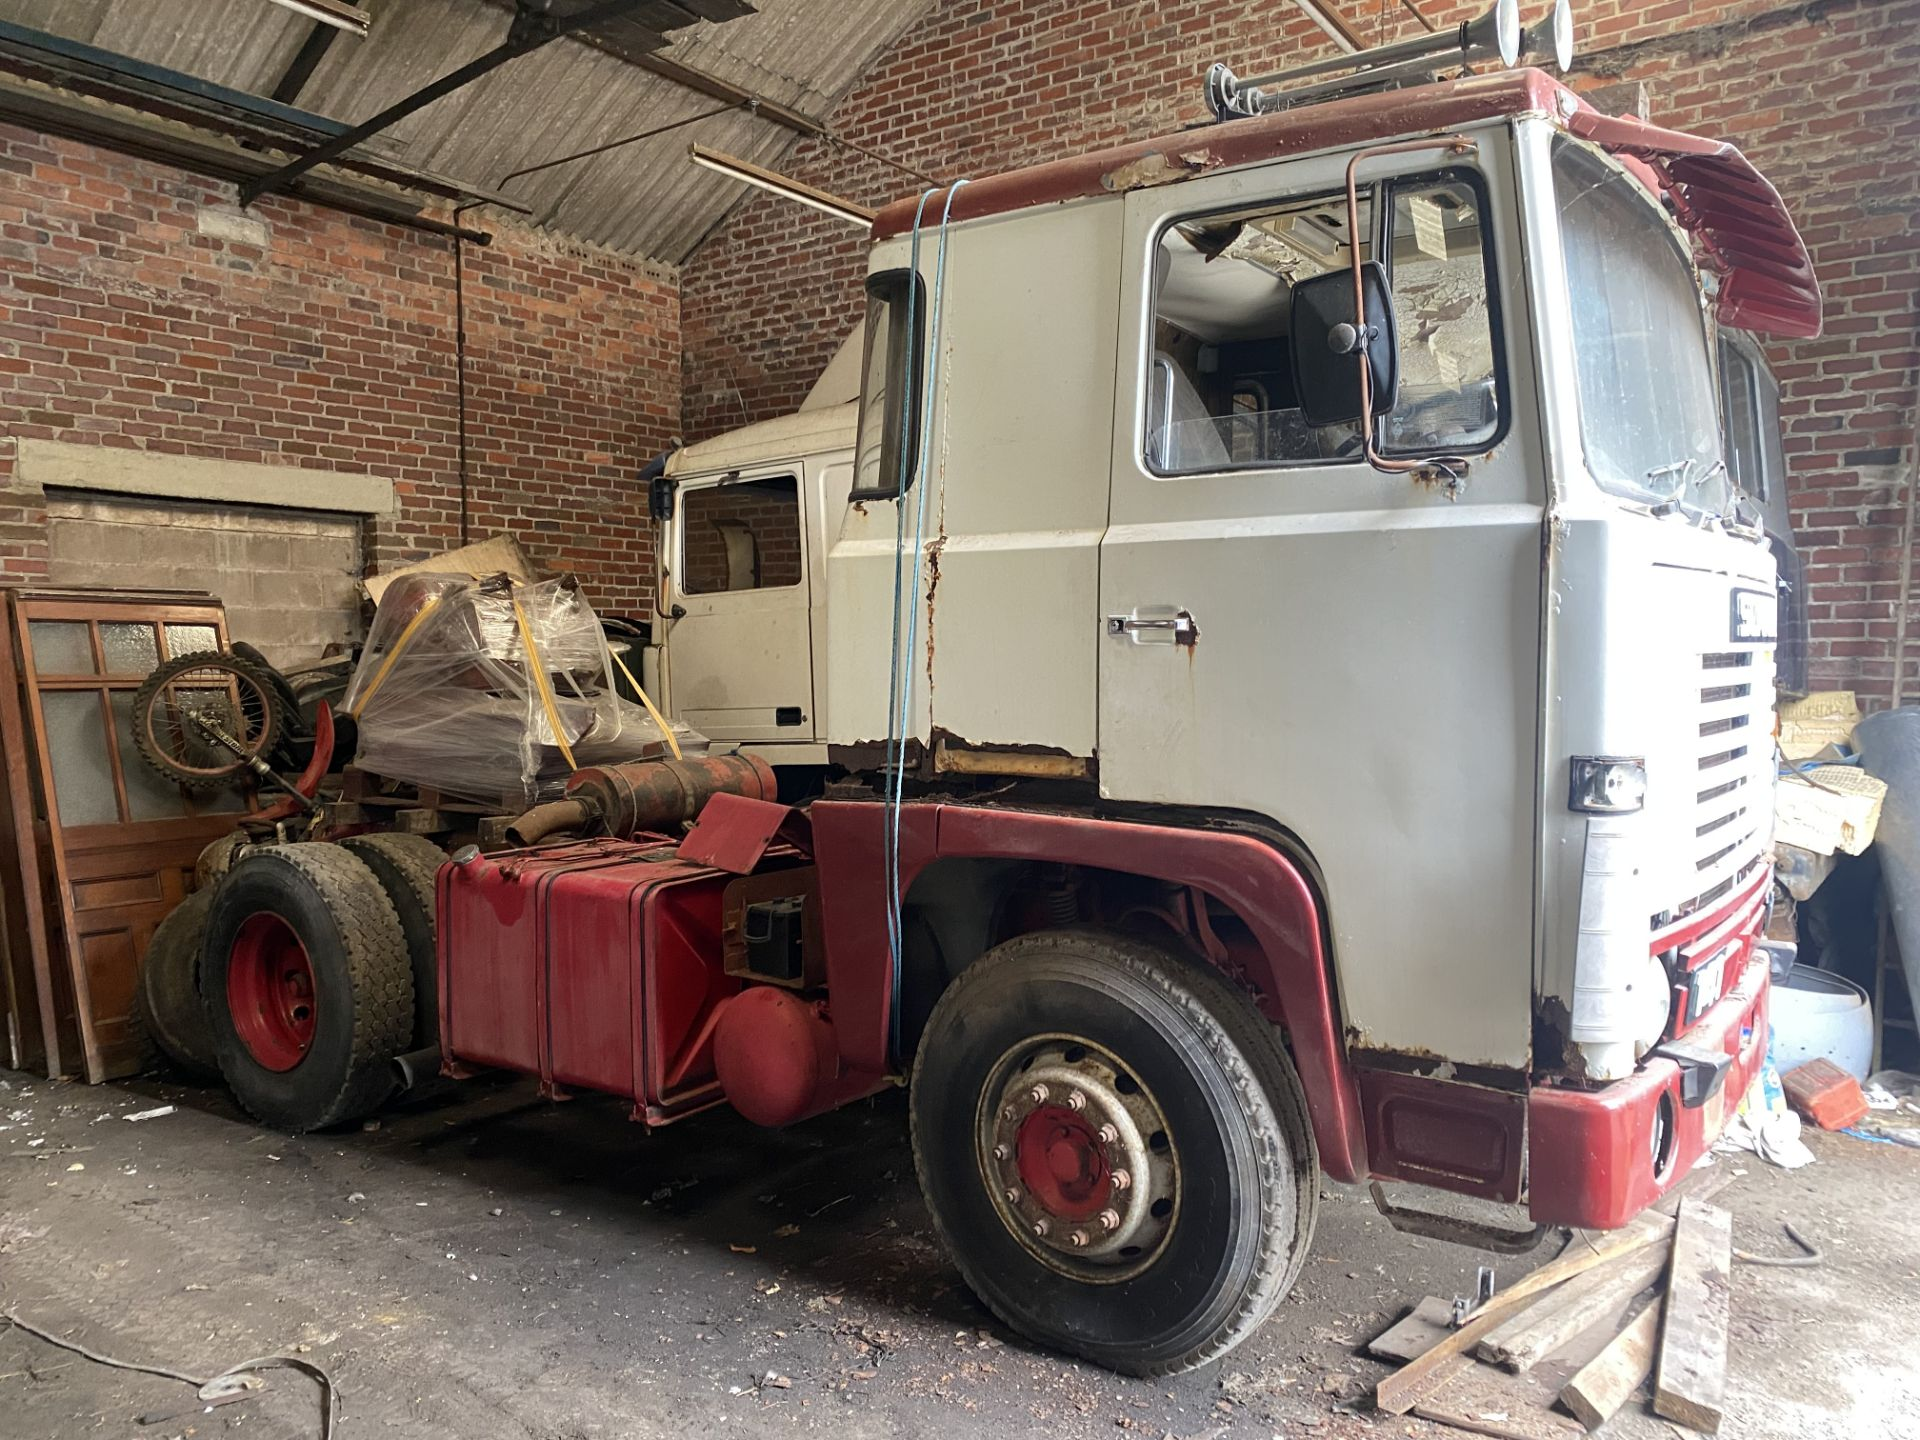 Scania 141 V8 4X2 TRACTOR UNIT, registration no. TFR 691X, date first registered 01/06/1982, cab - Image 3 of 12